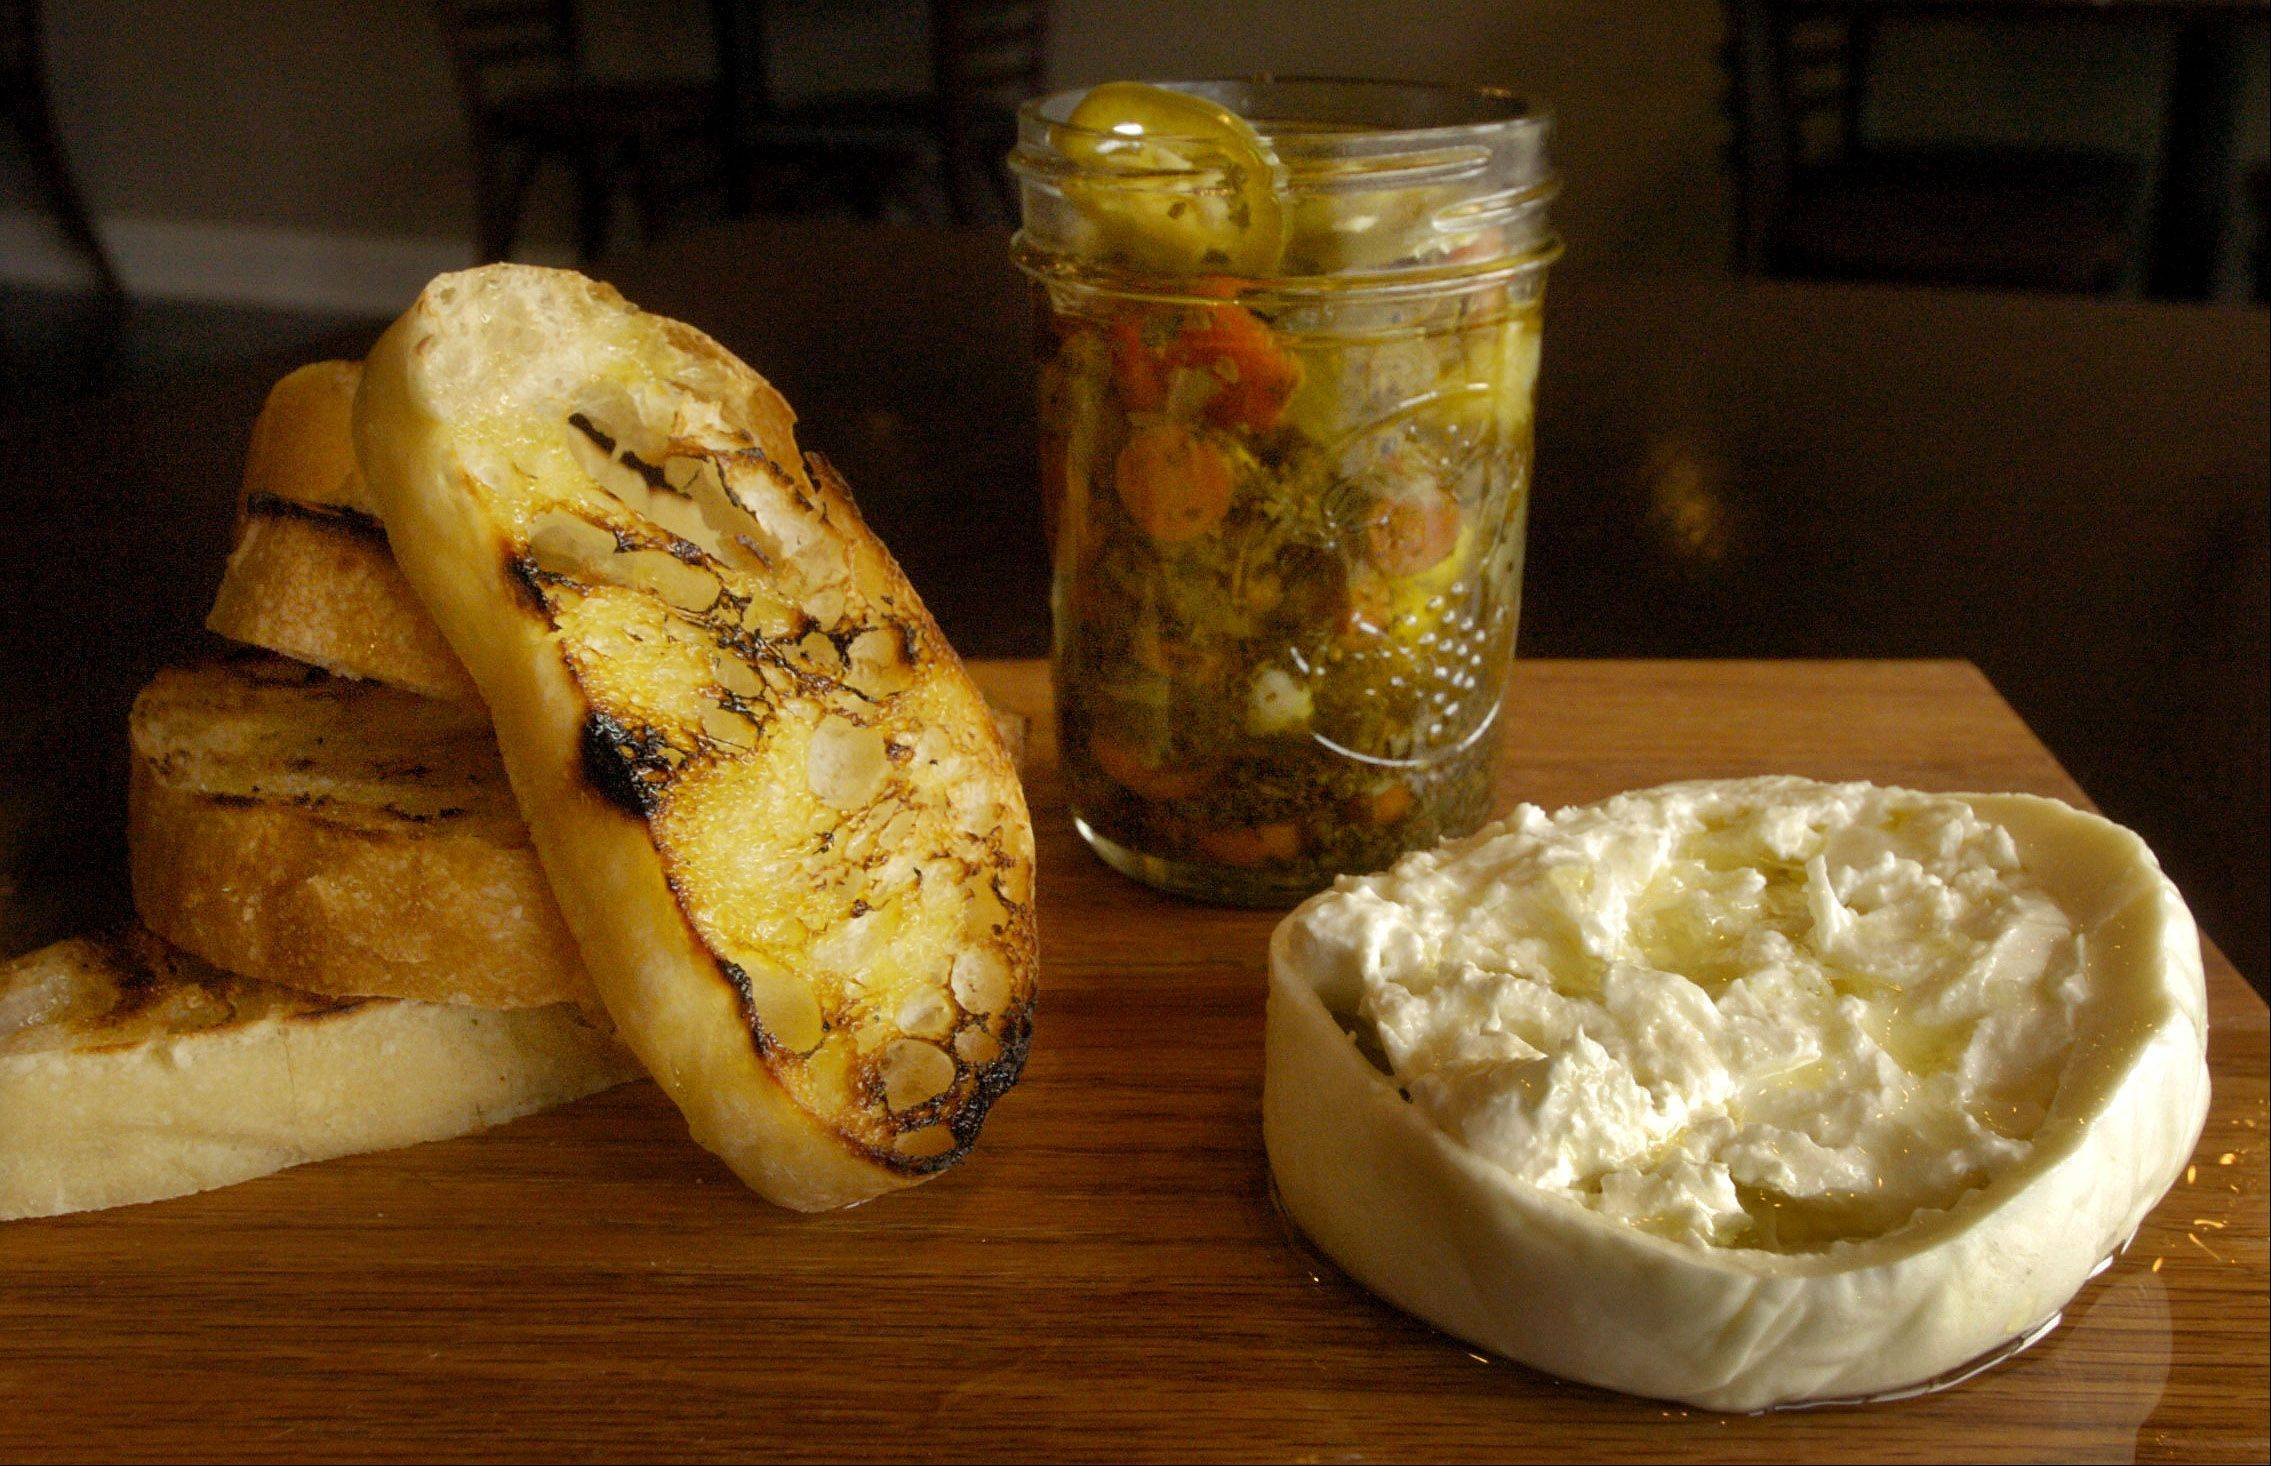 Italian-inspired small plates, like this burratta cheese with giardiniera, jalapeños and ciabatta, please diners at Near Restaurant in Barrington.